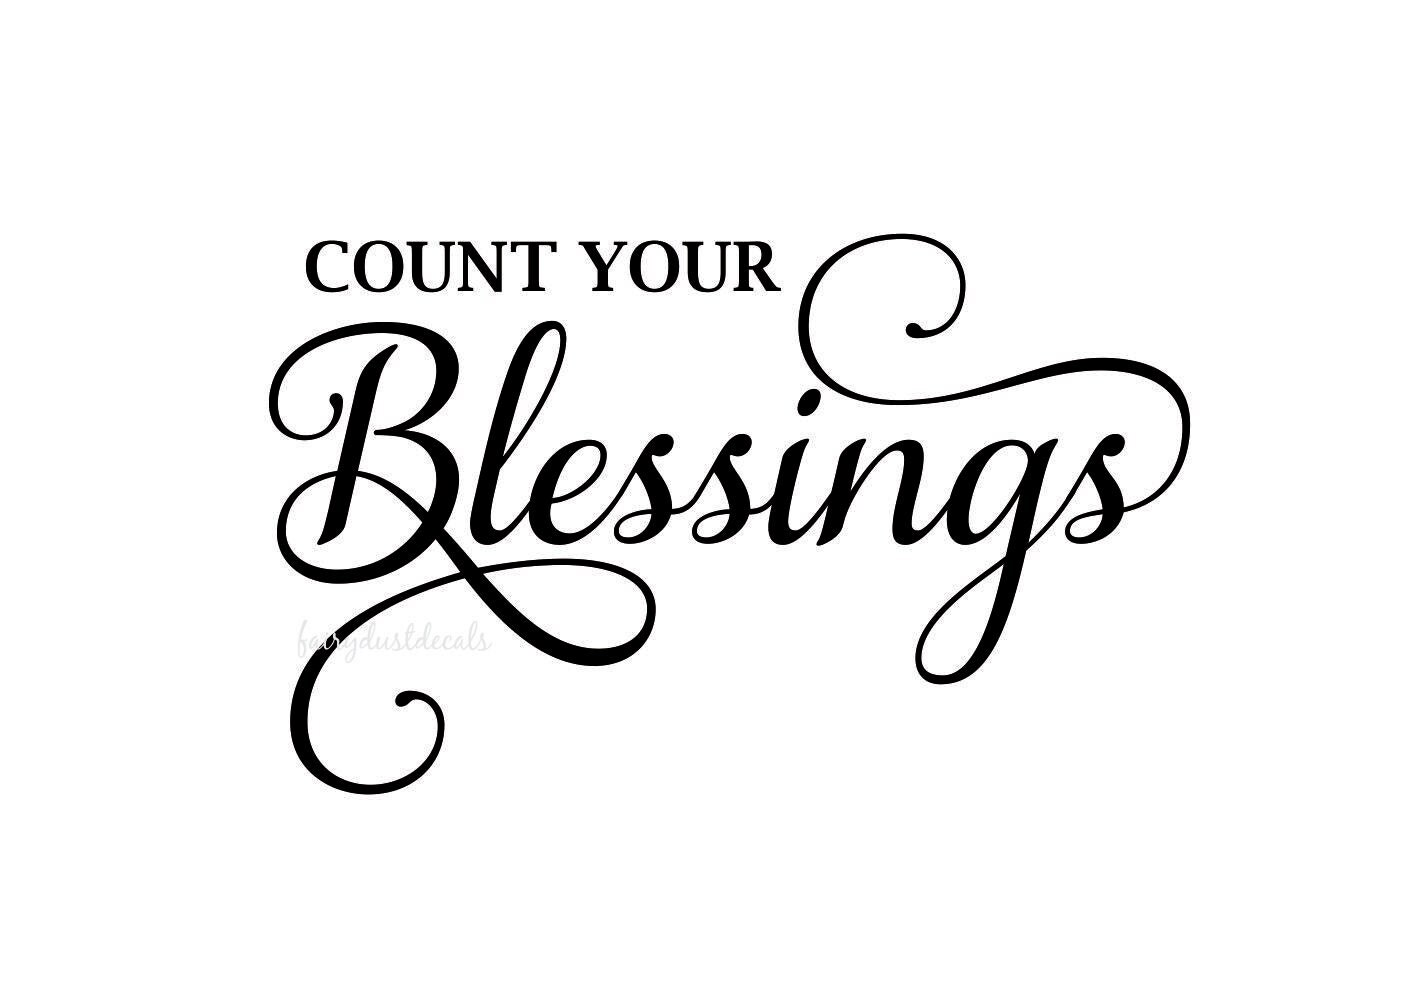 Count Your Blessings wall decal religious inspirational